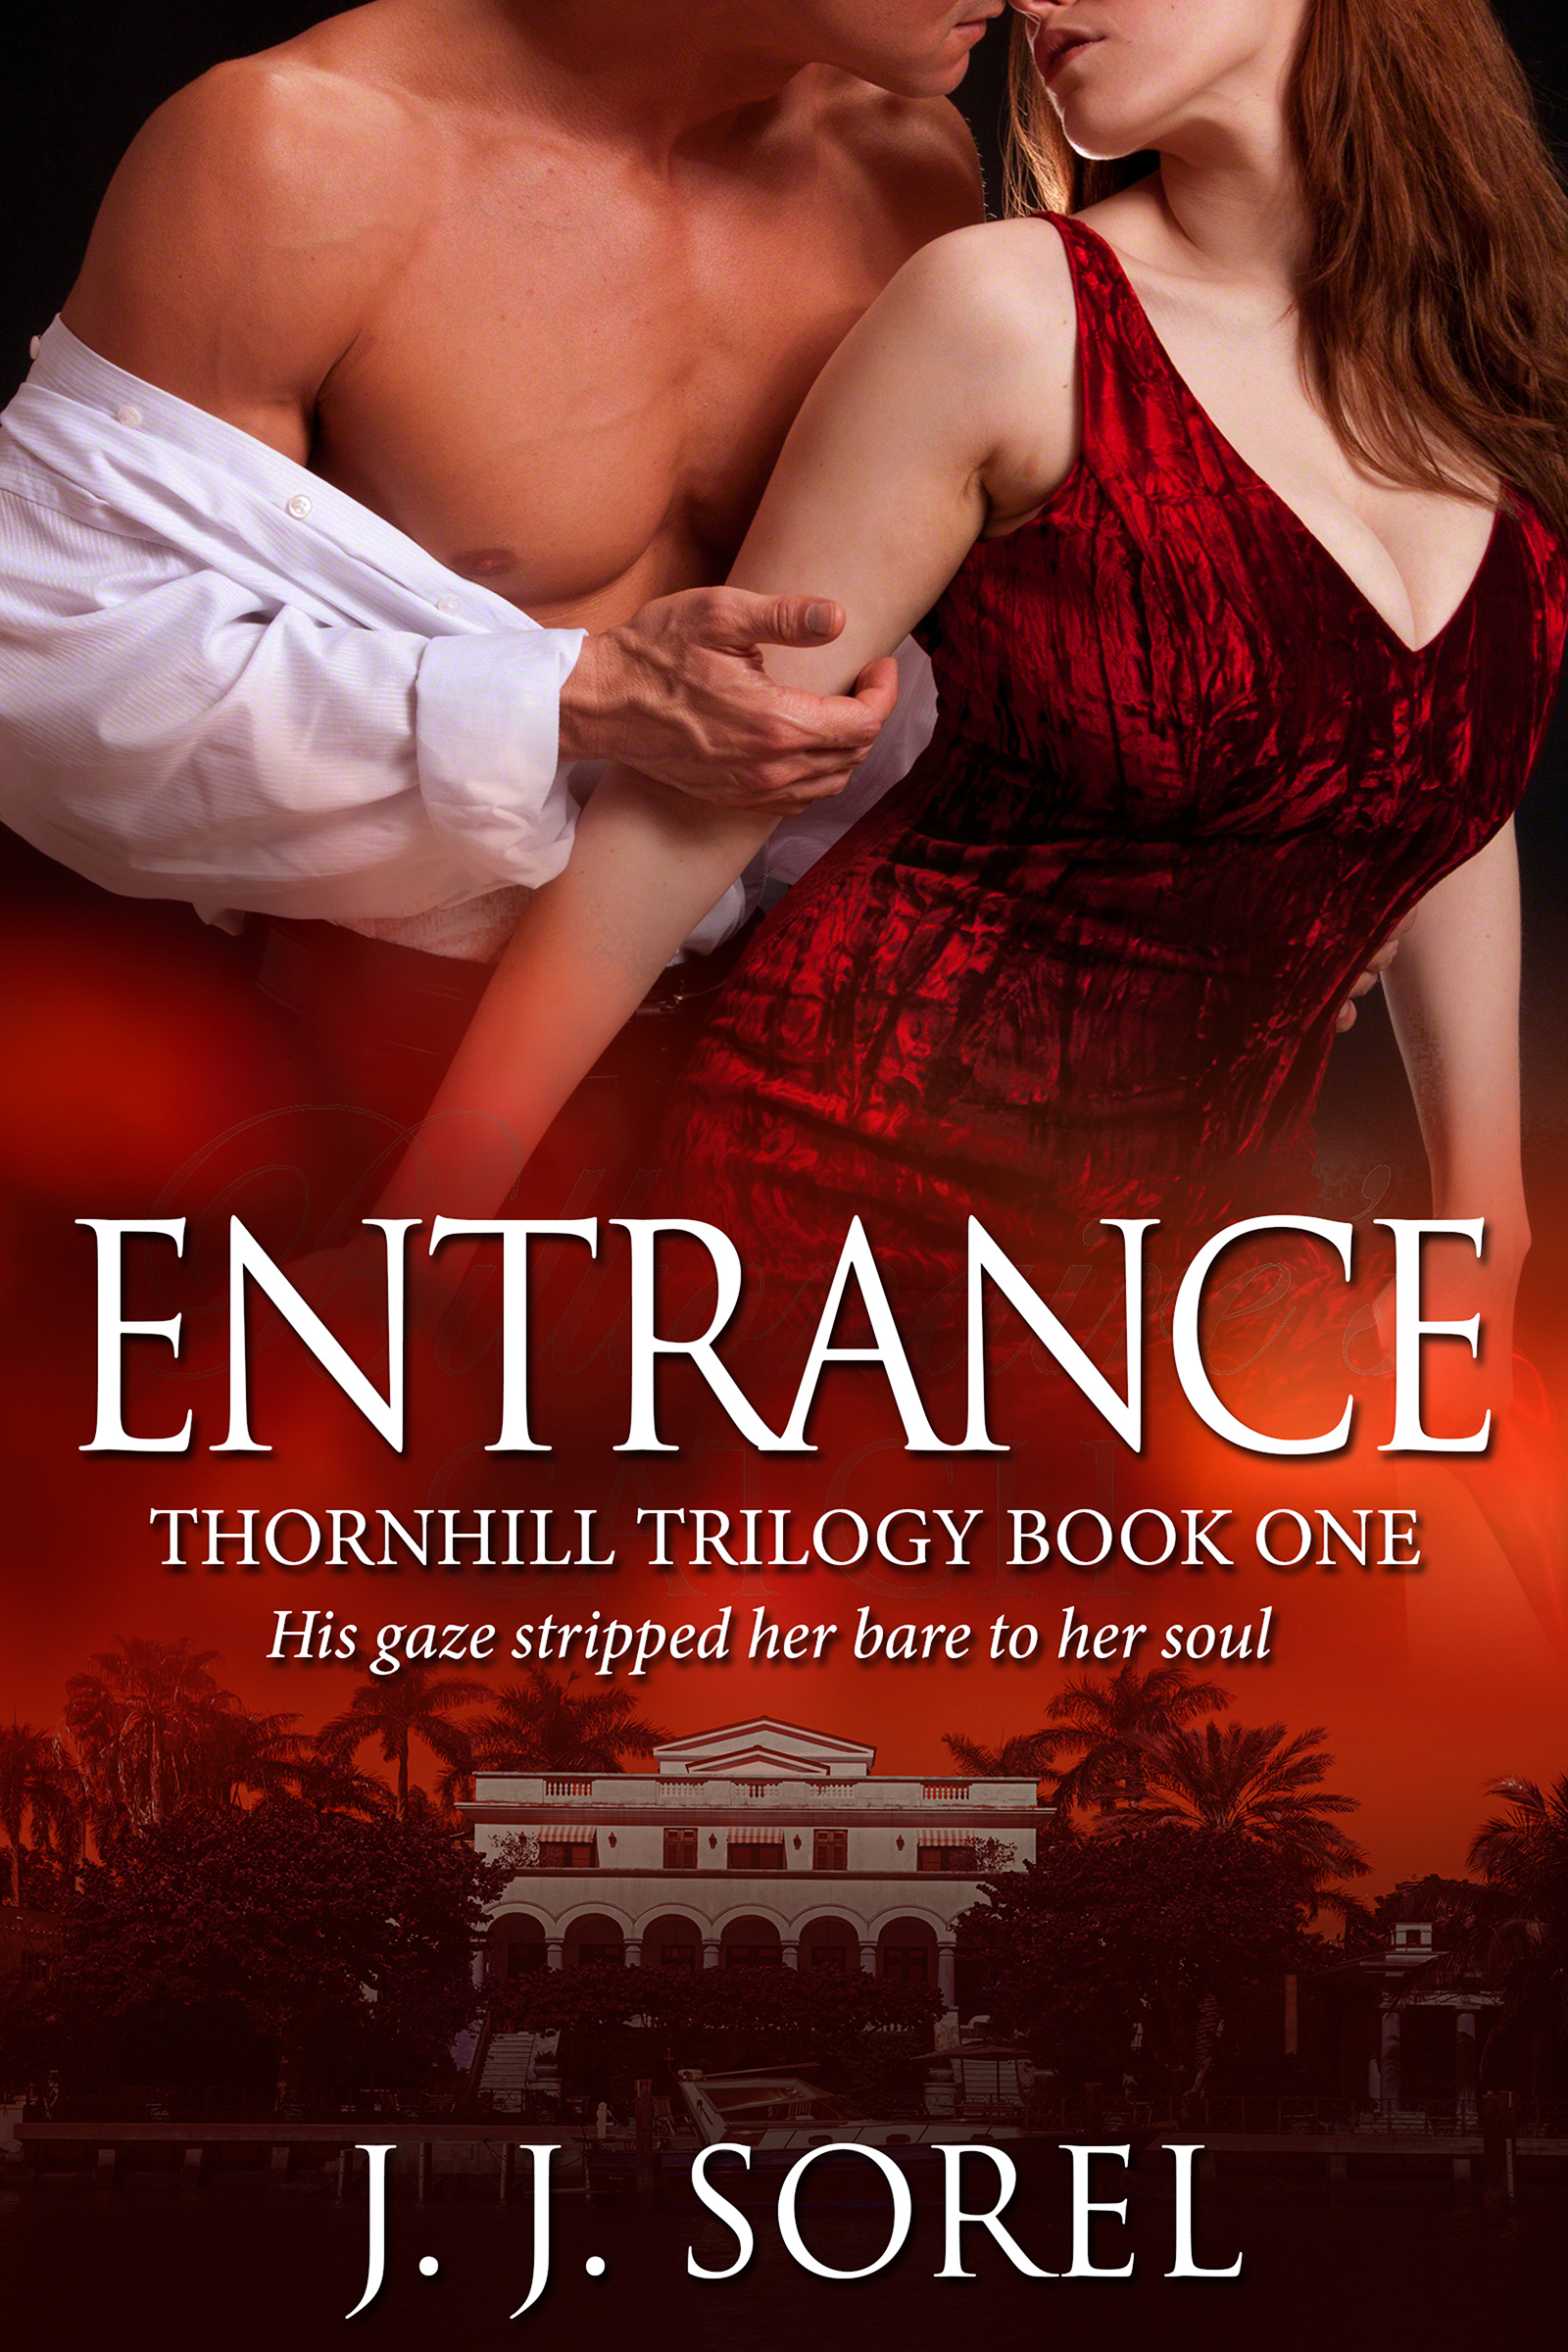 Entrance (thornhill trilogy book one)